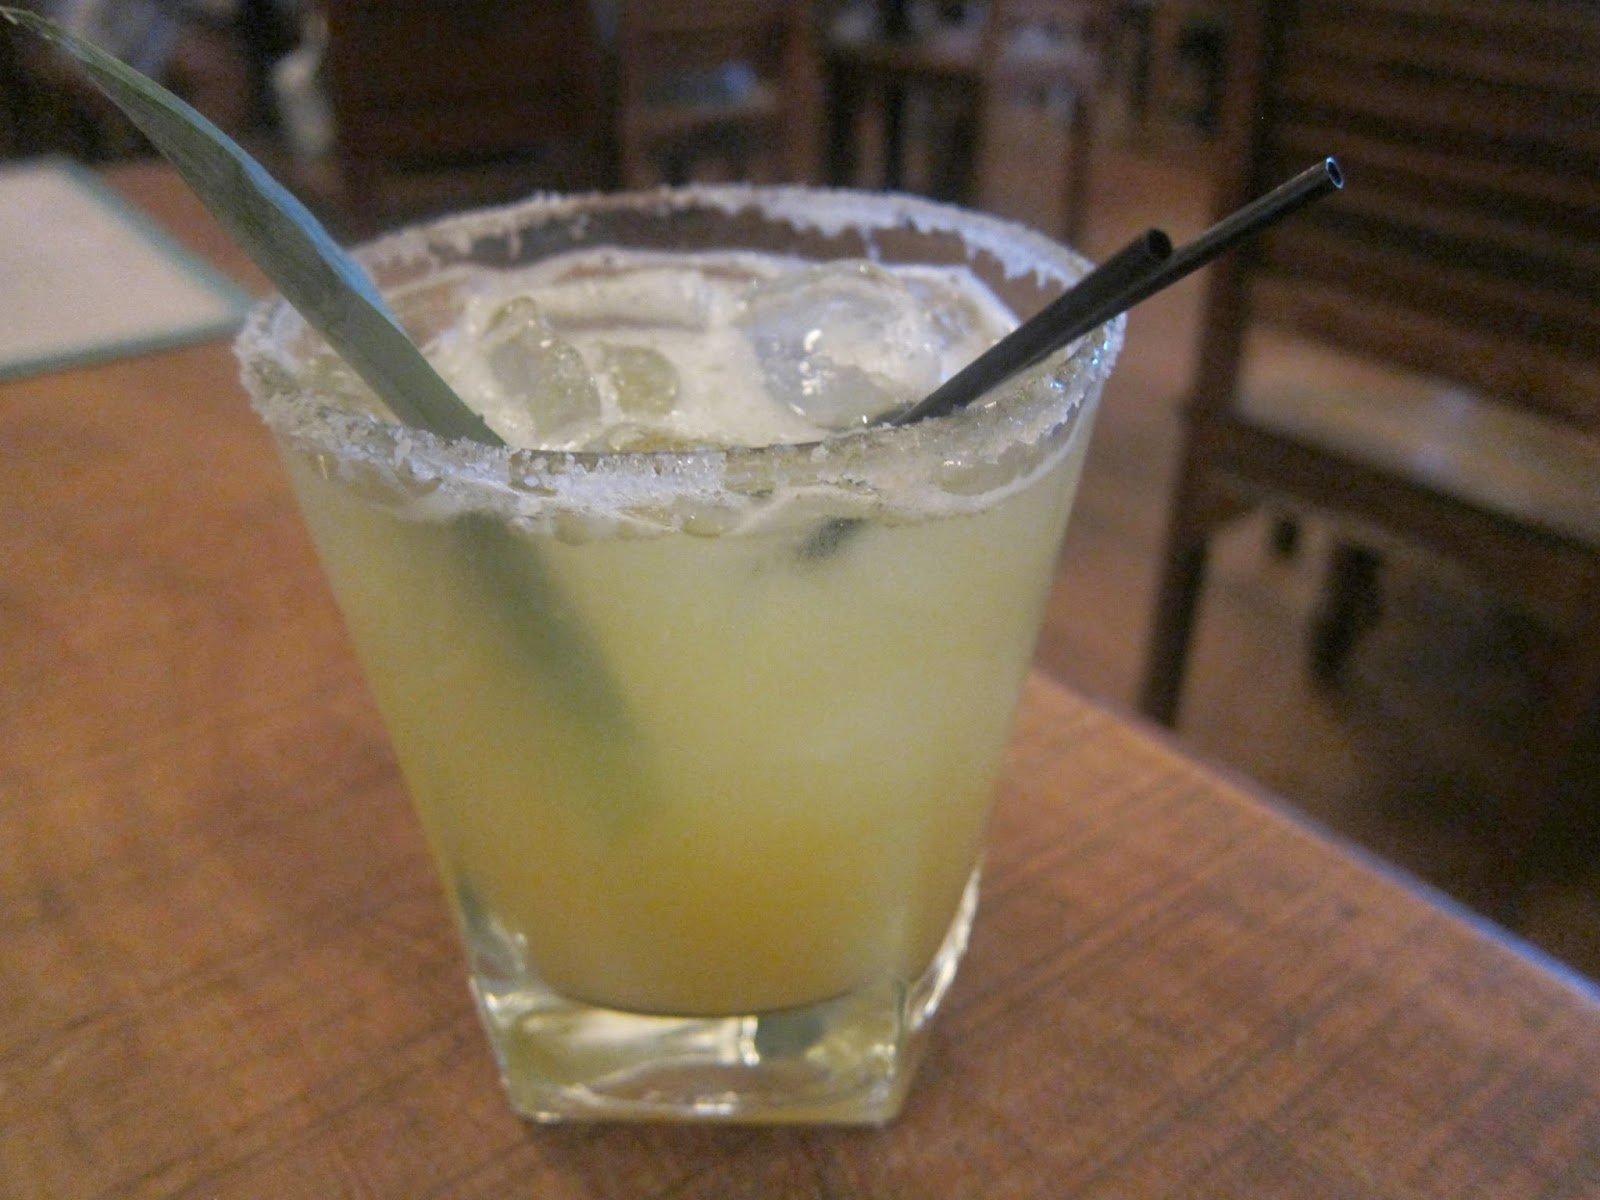 Pineapple Habanero margarita from The Painted Burro | The Economical Eater